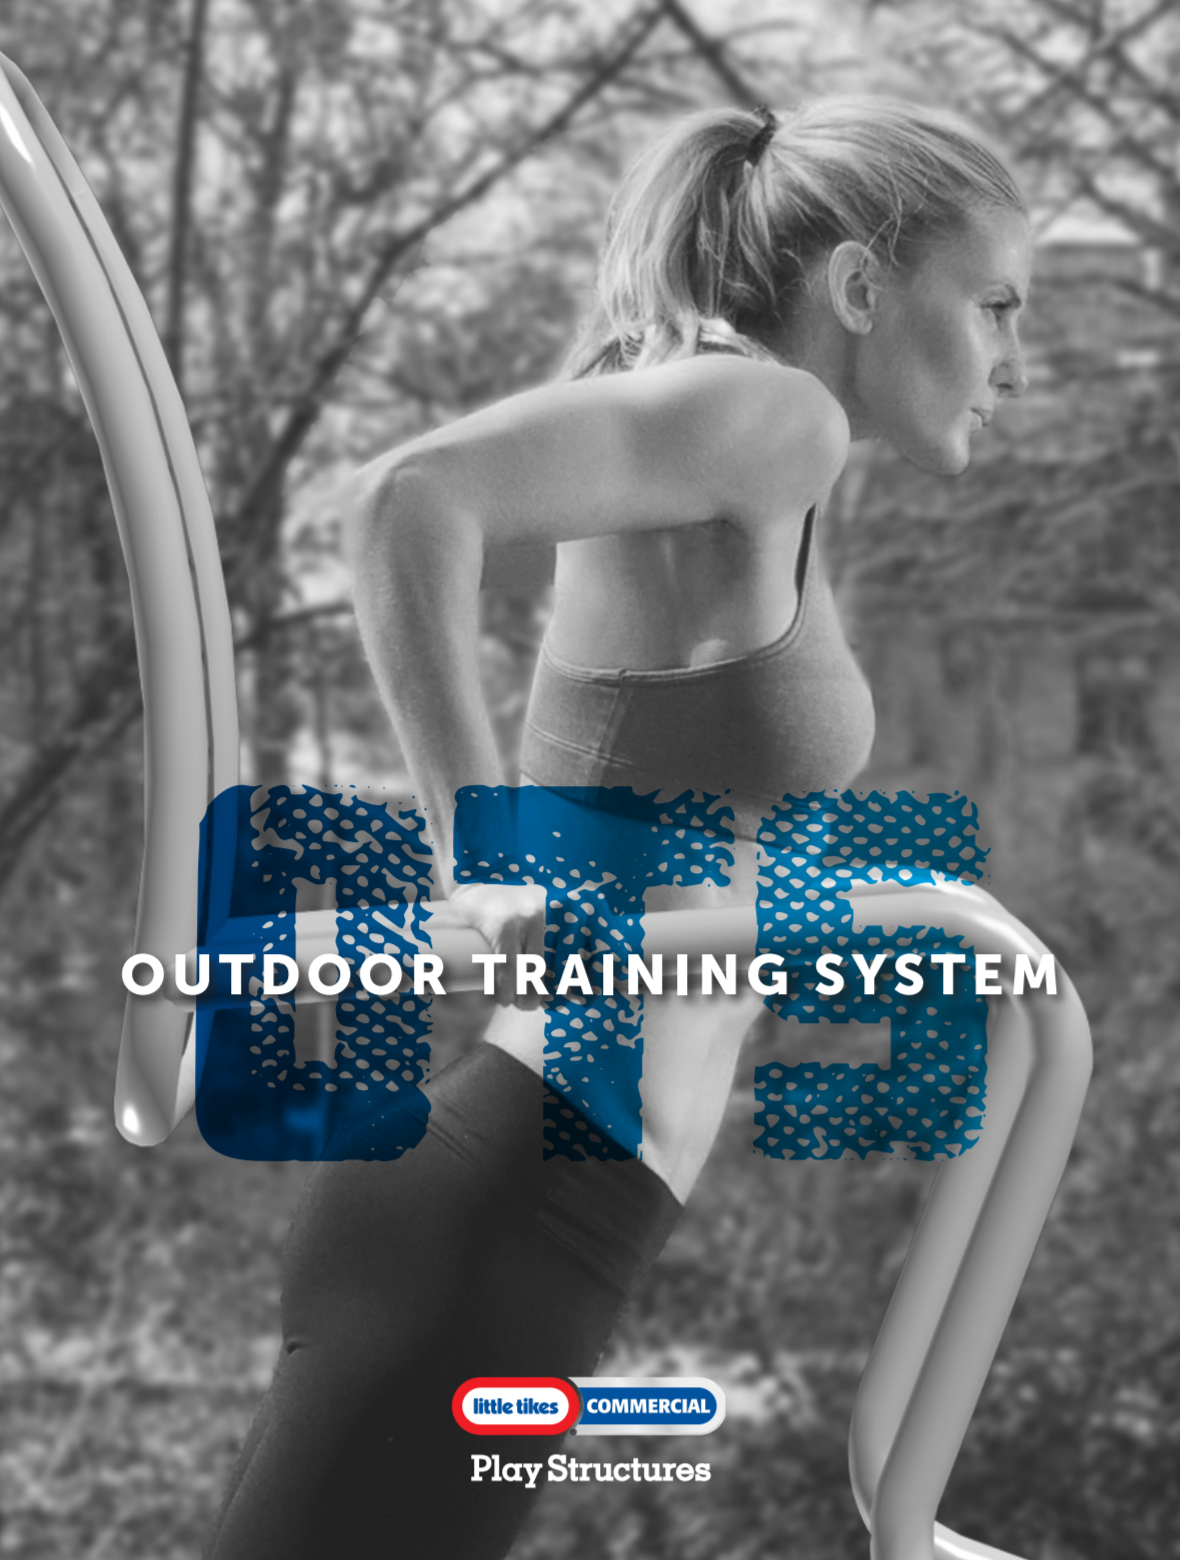 Little Tikes - Outdoor Training System